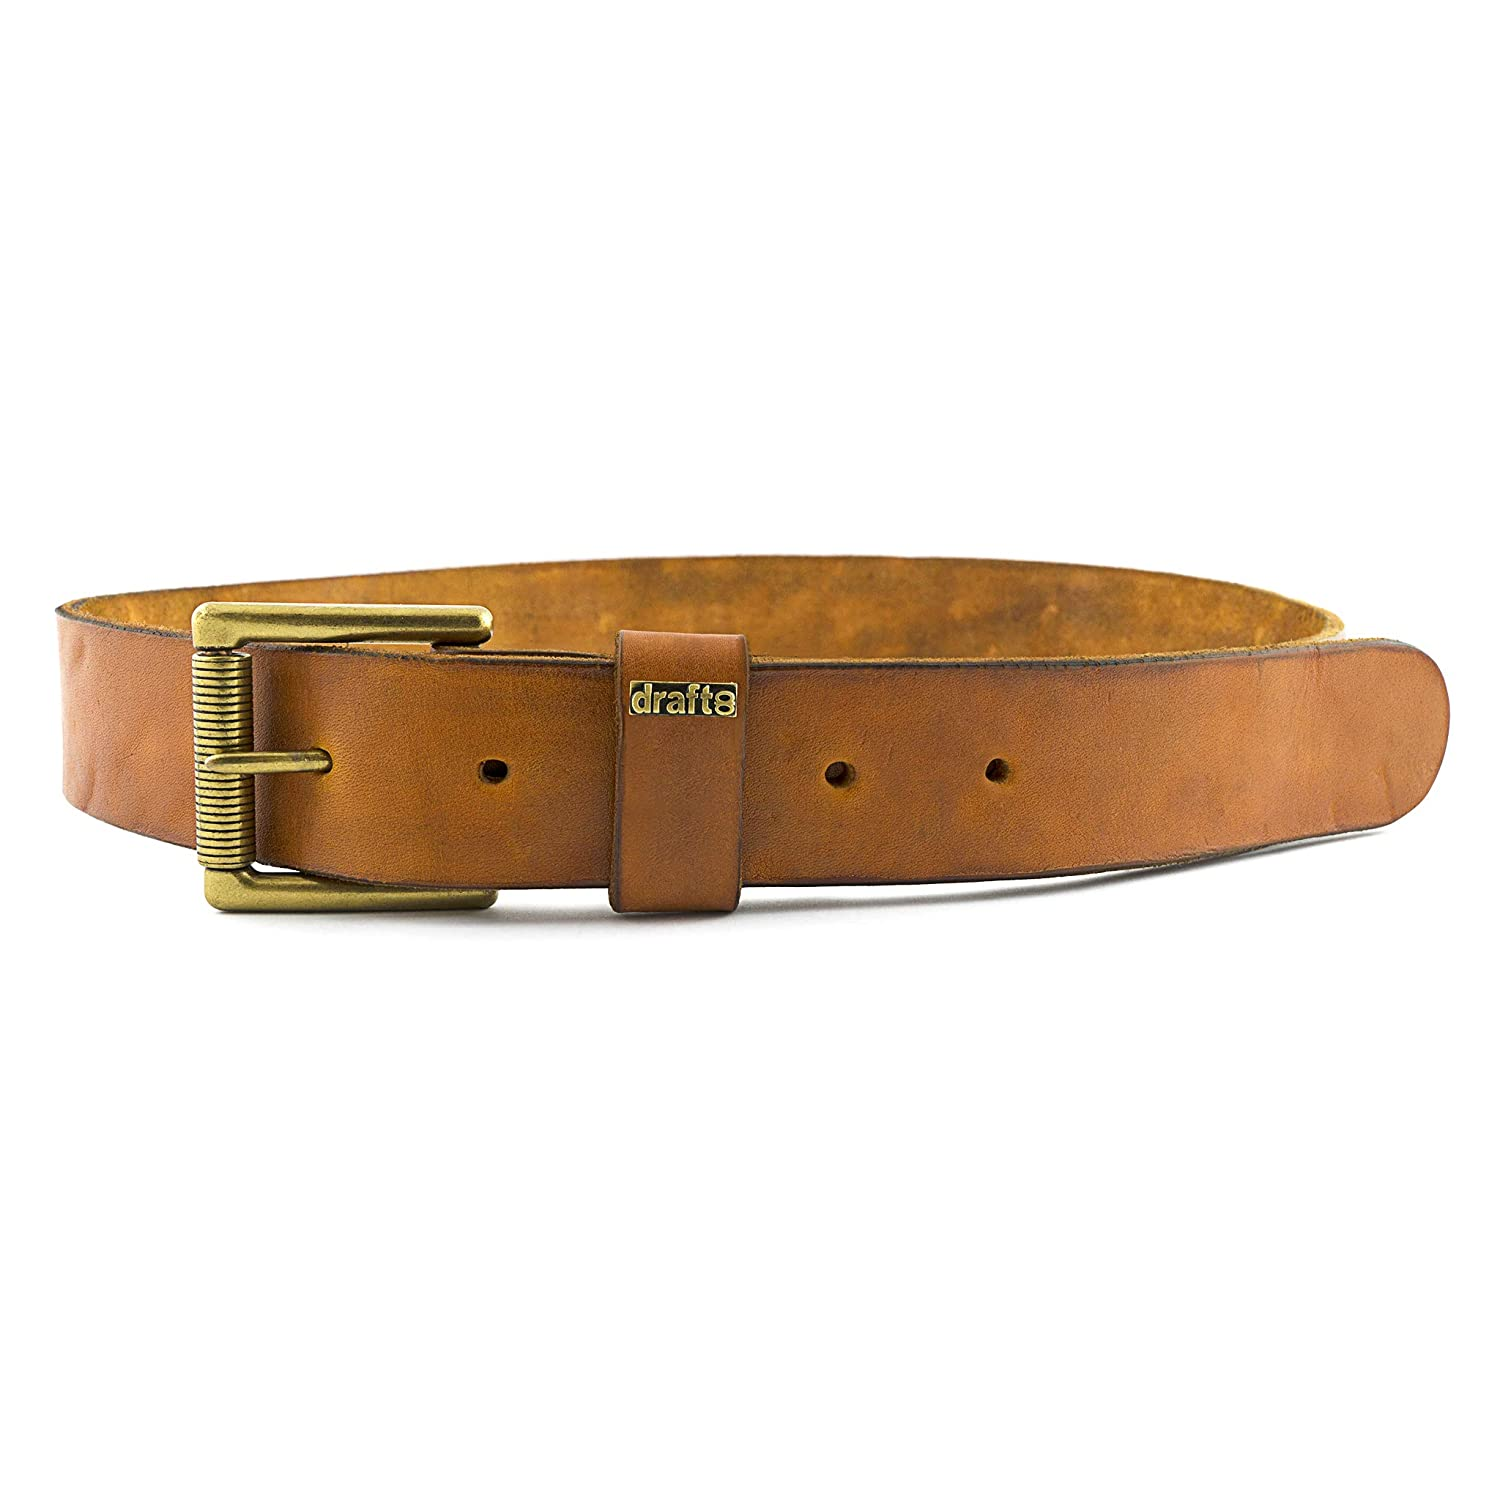 Single Brass Roller Buckle Strong/&Thick Leather Belt draft-8 Leather Goods Belt